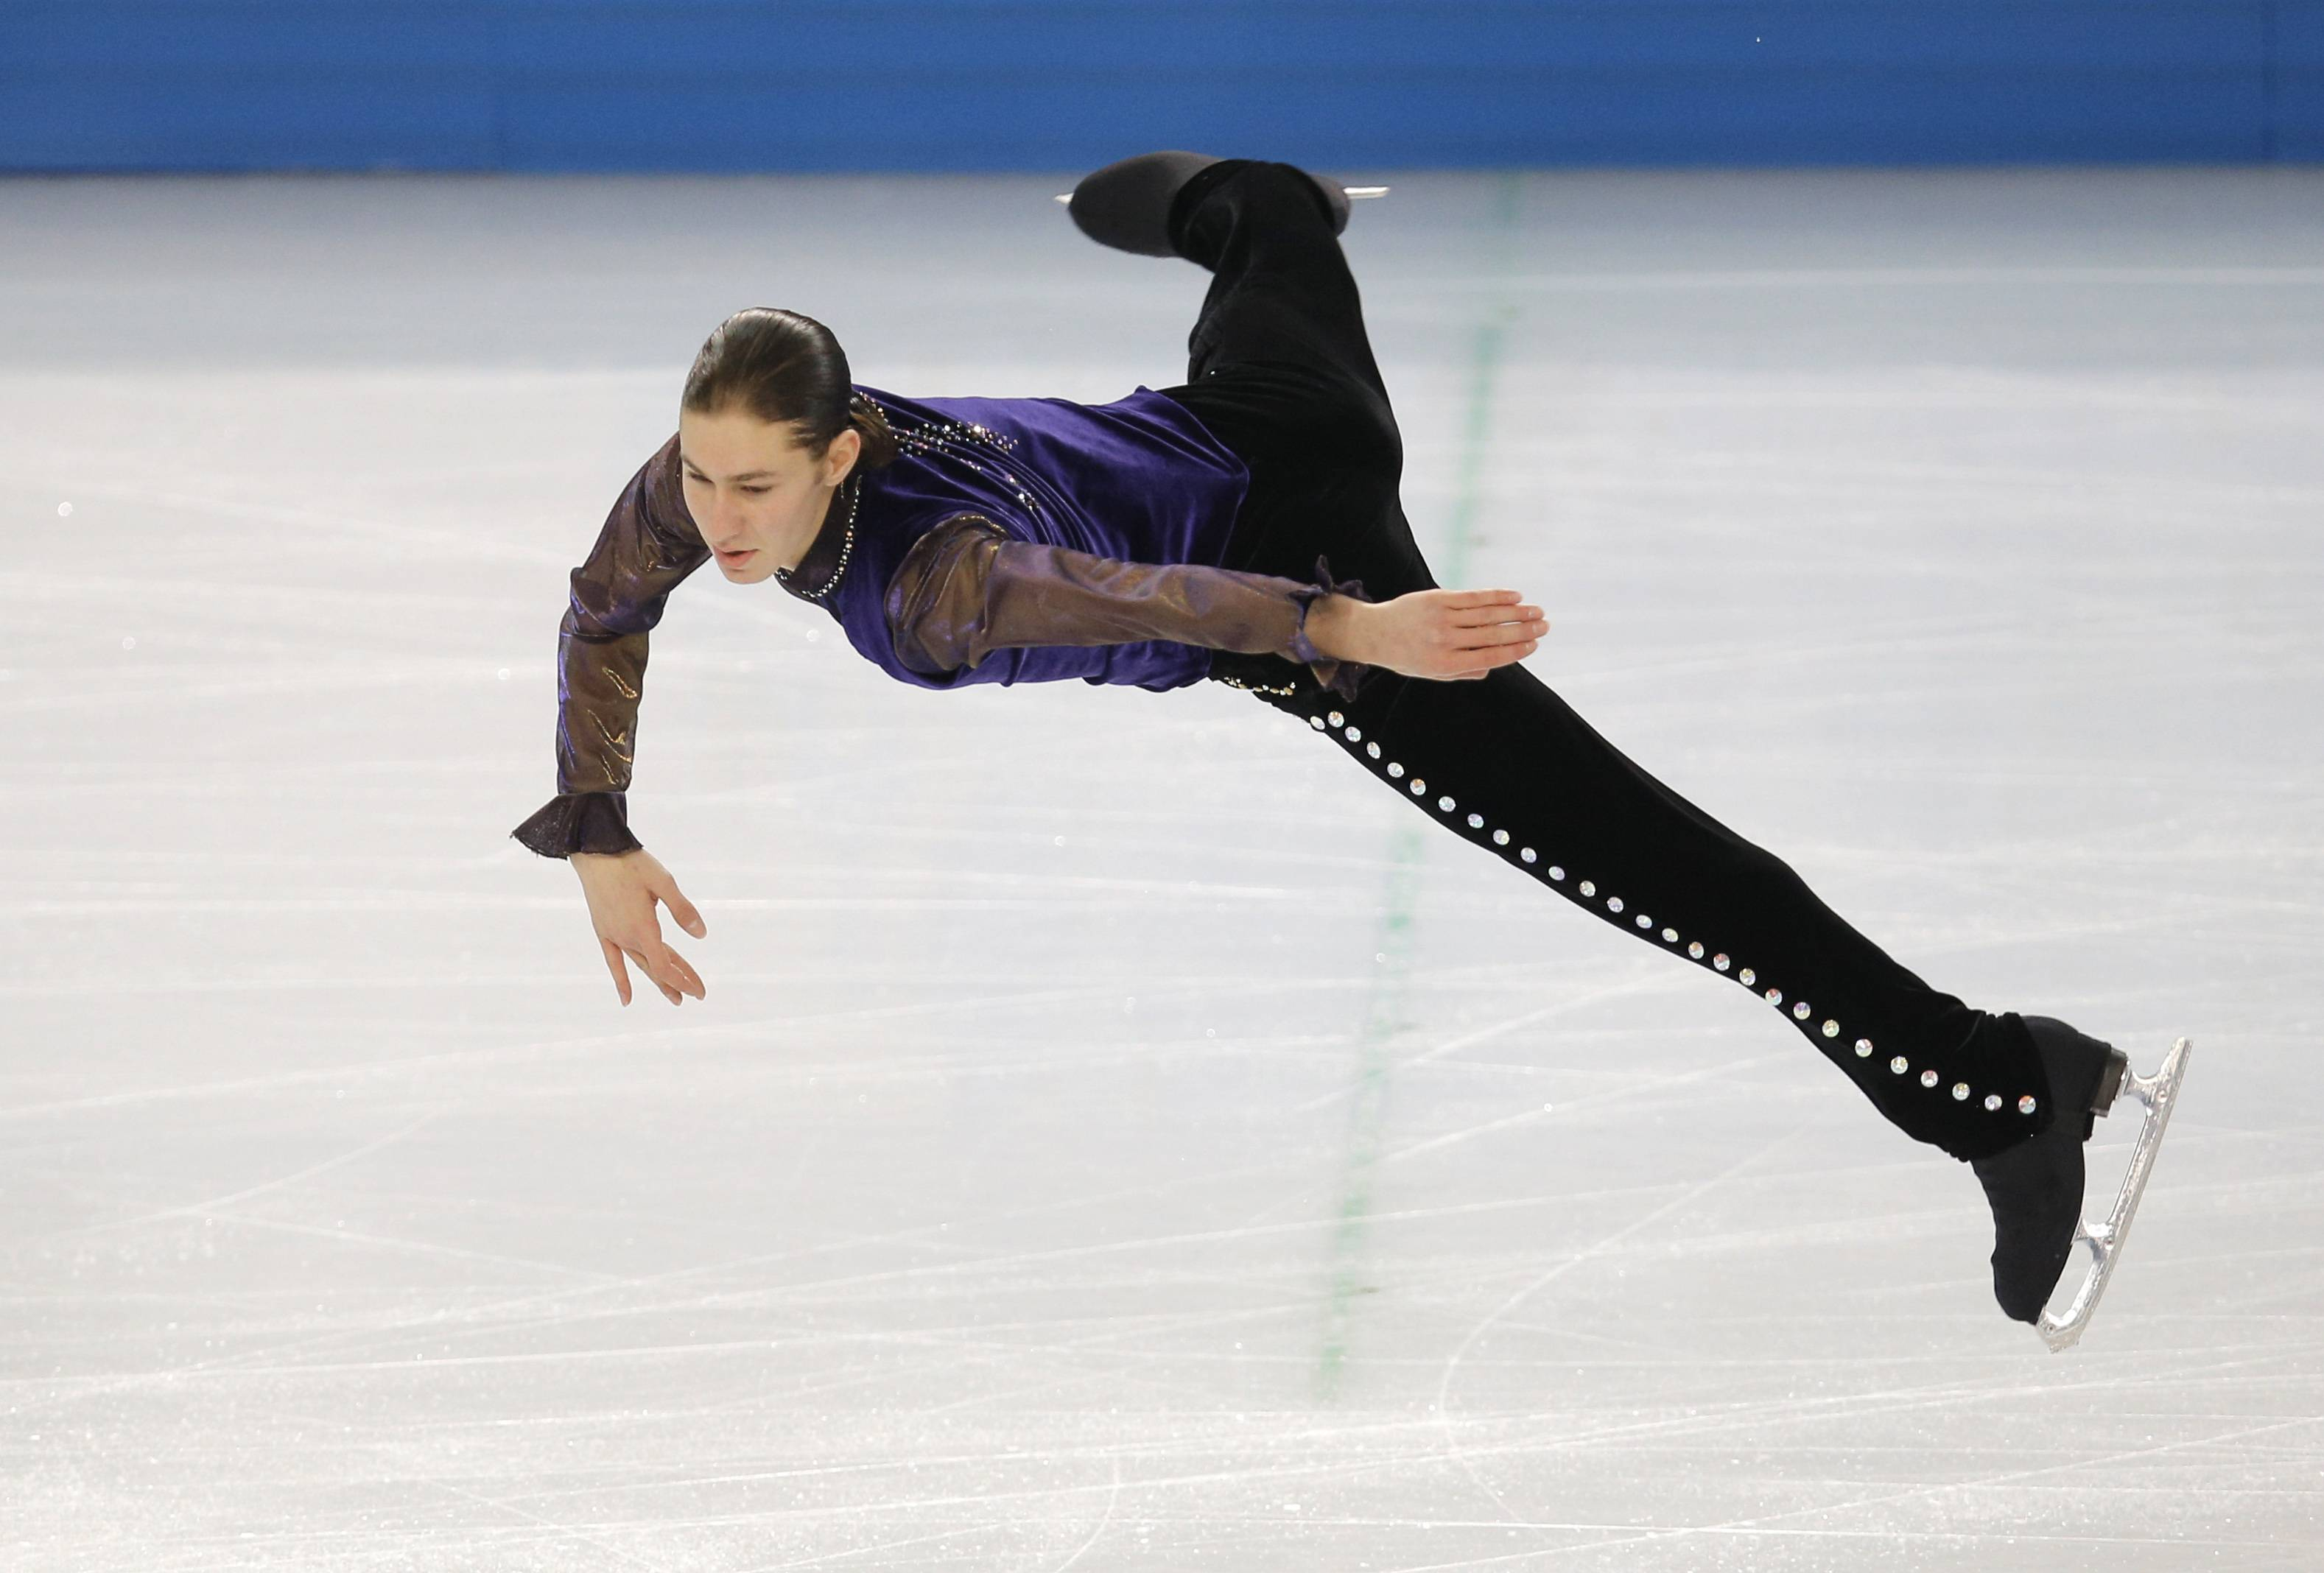 Highland Park's Jason Brown sixth after short program